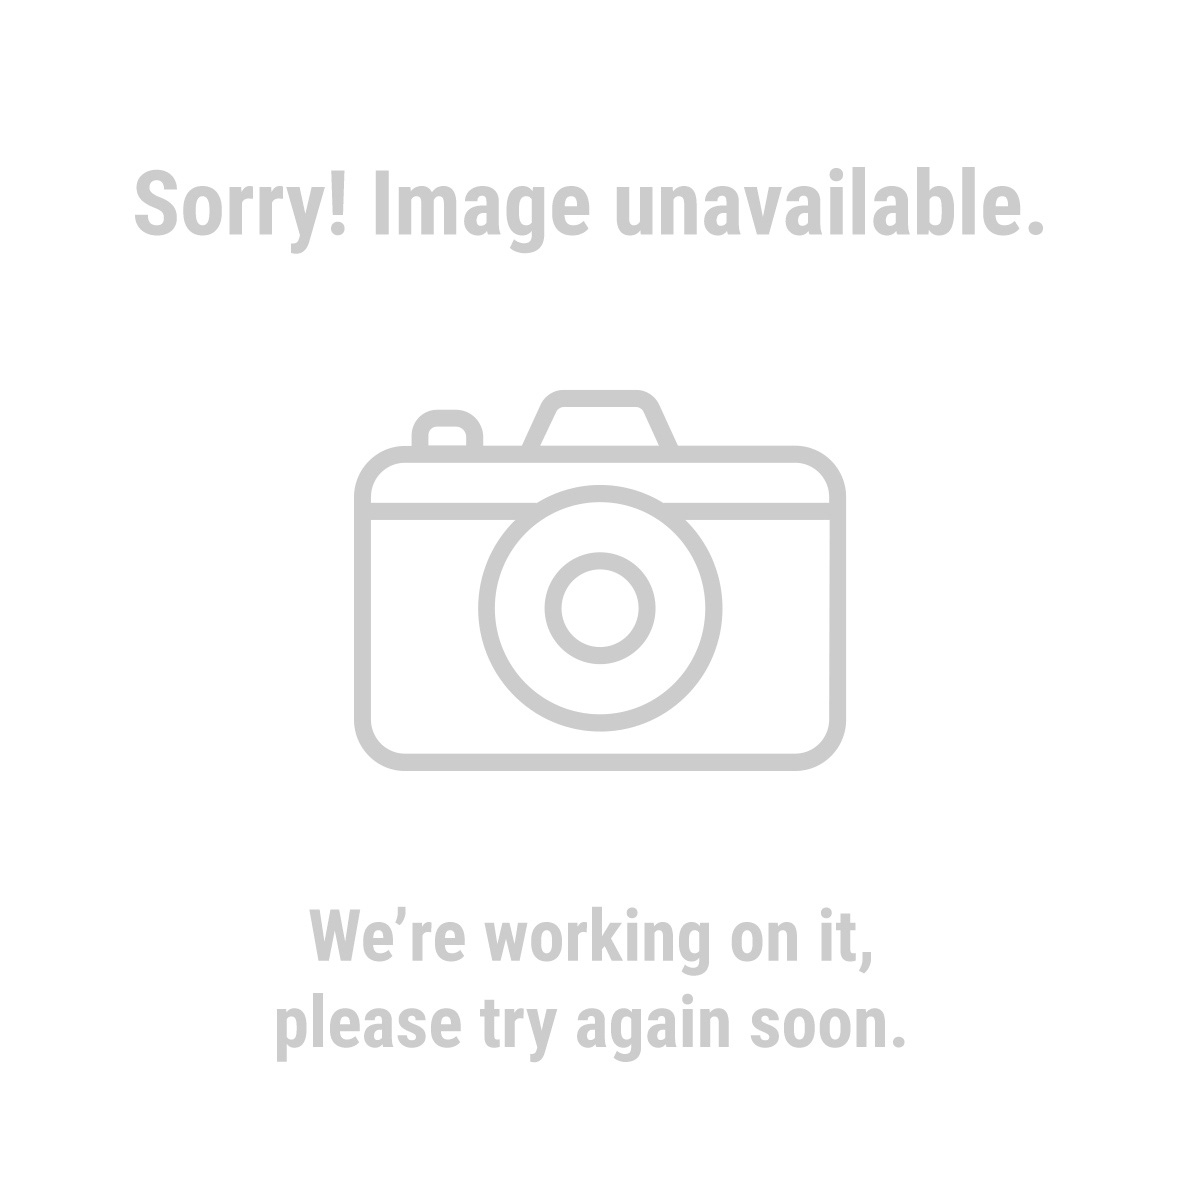 Warrior 68830 10 Piece Coarse Tooth Rotary Rasp File Set